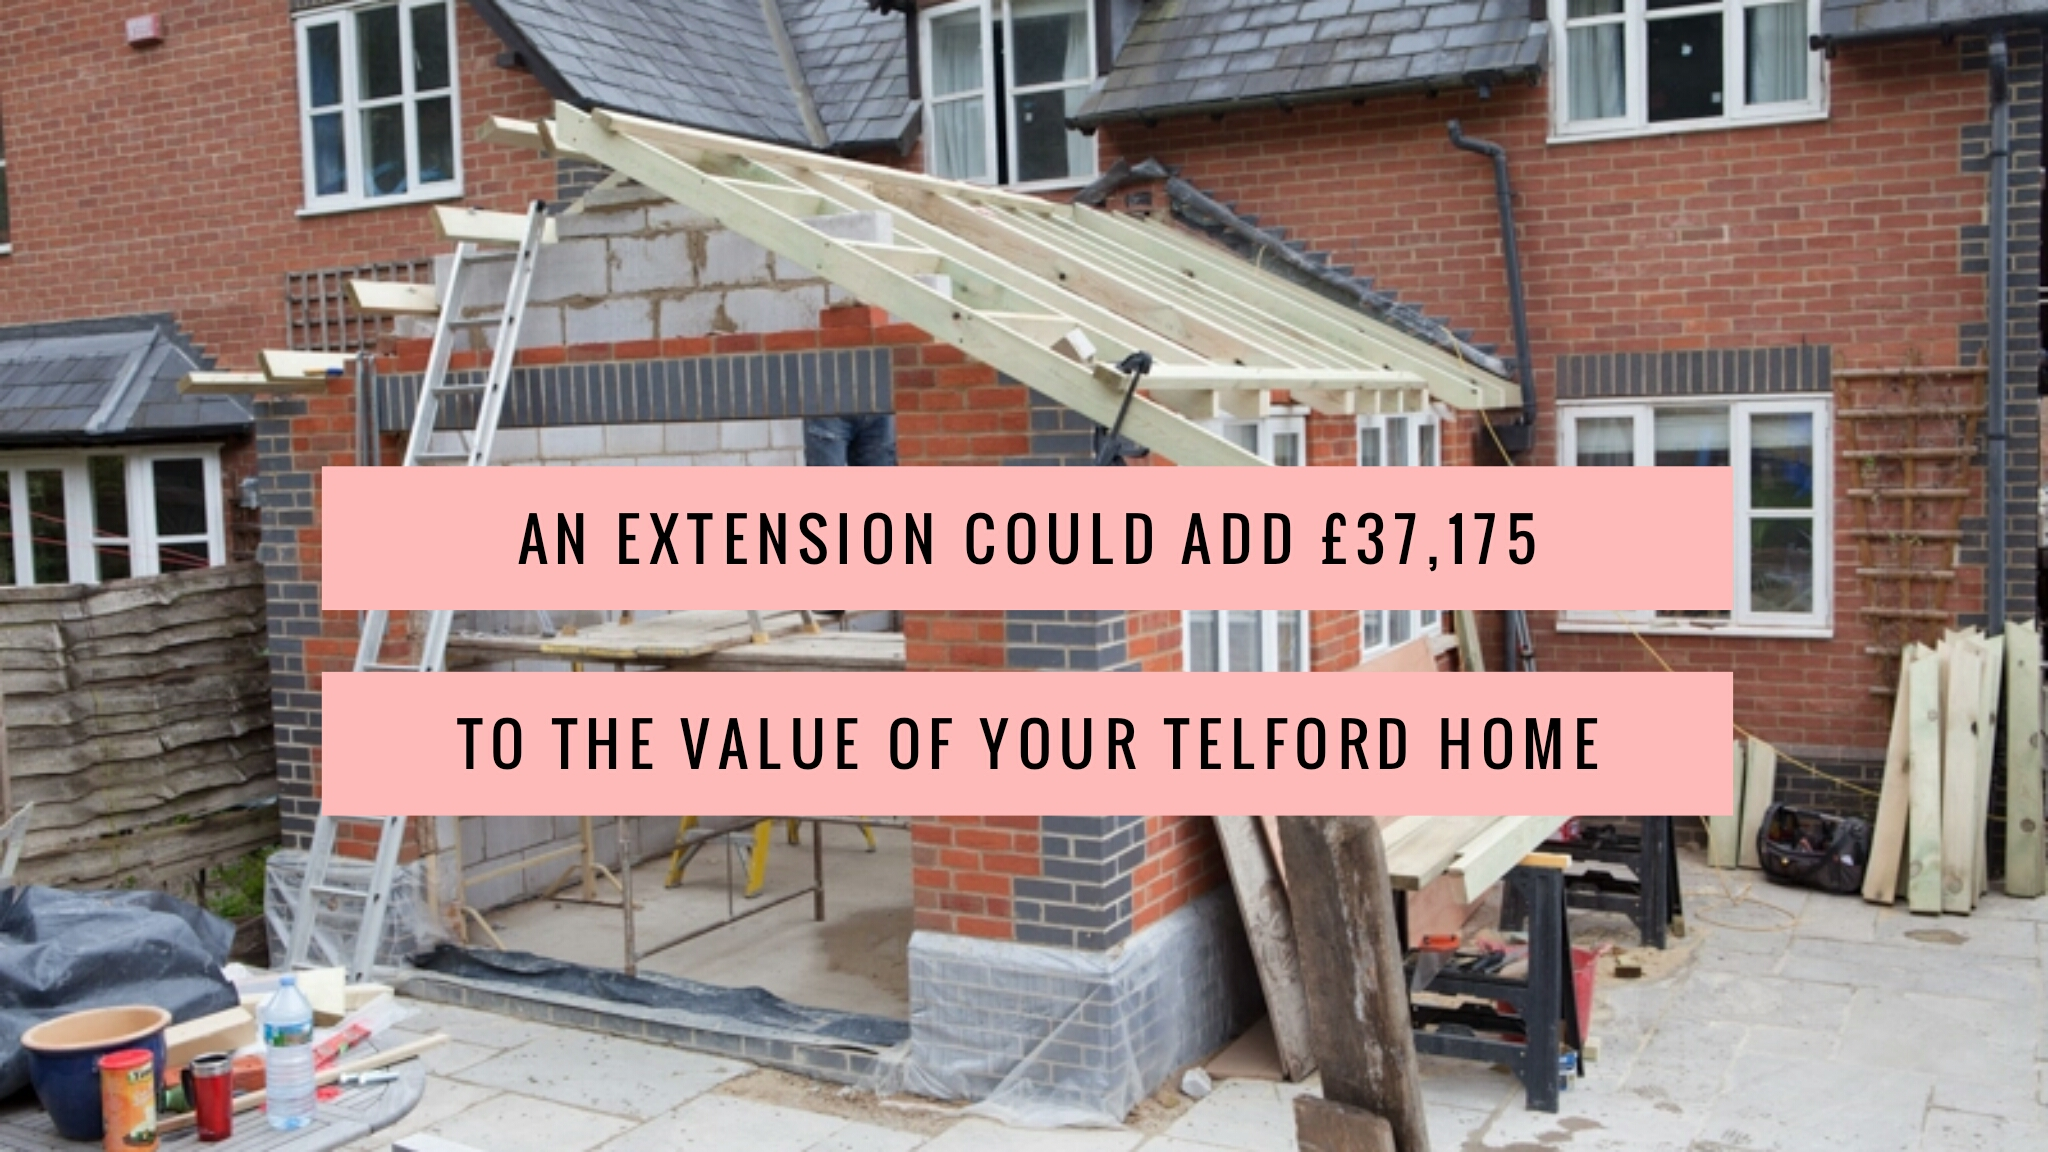 An extension could add £37,175 to the value of your Telford home